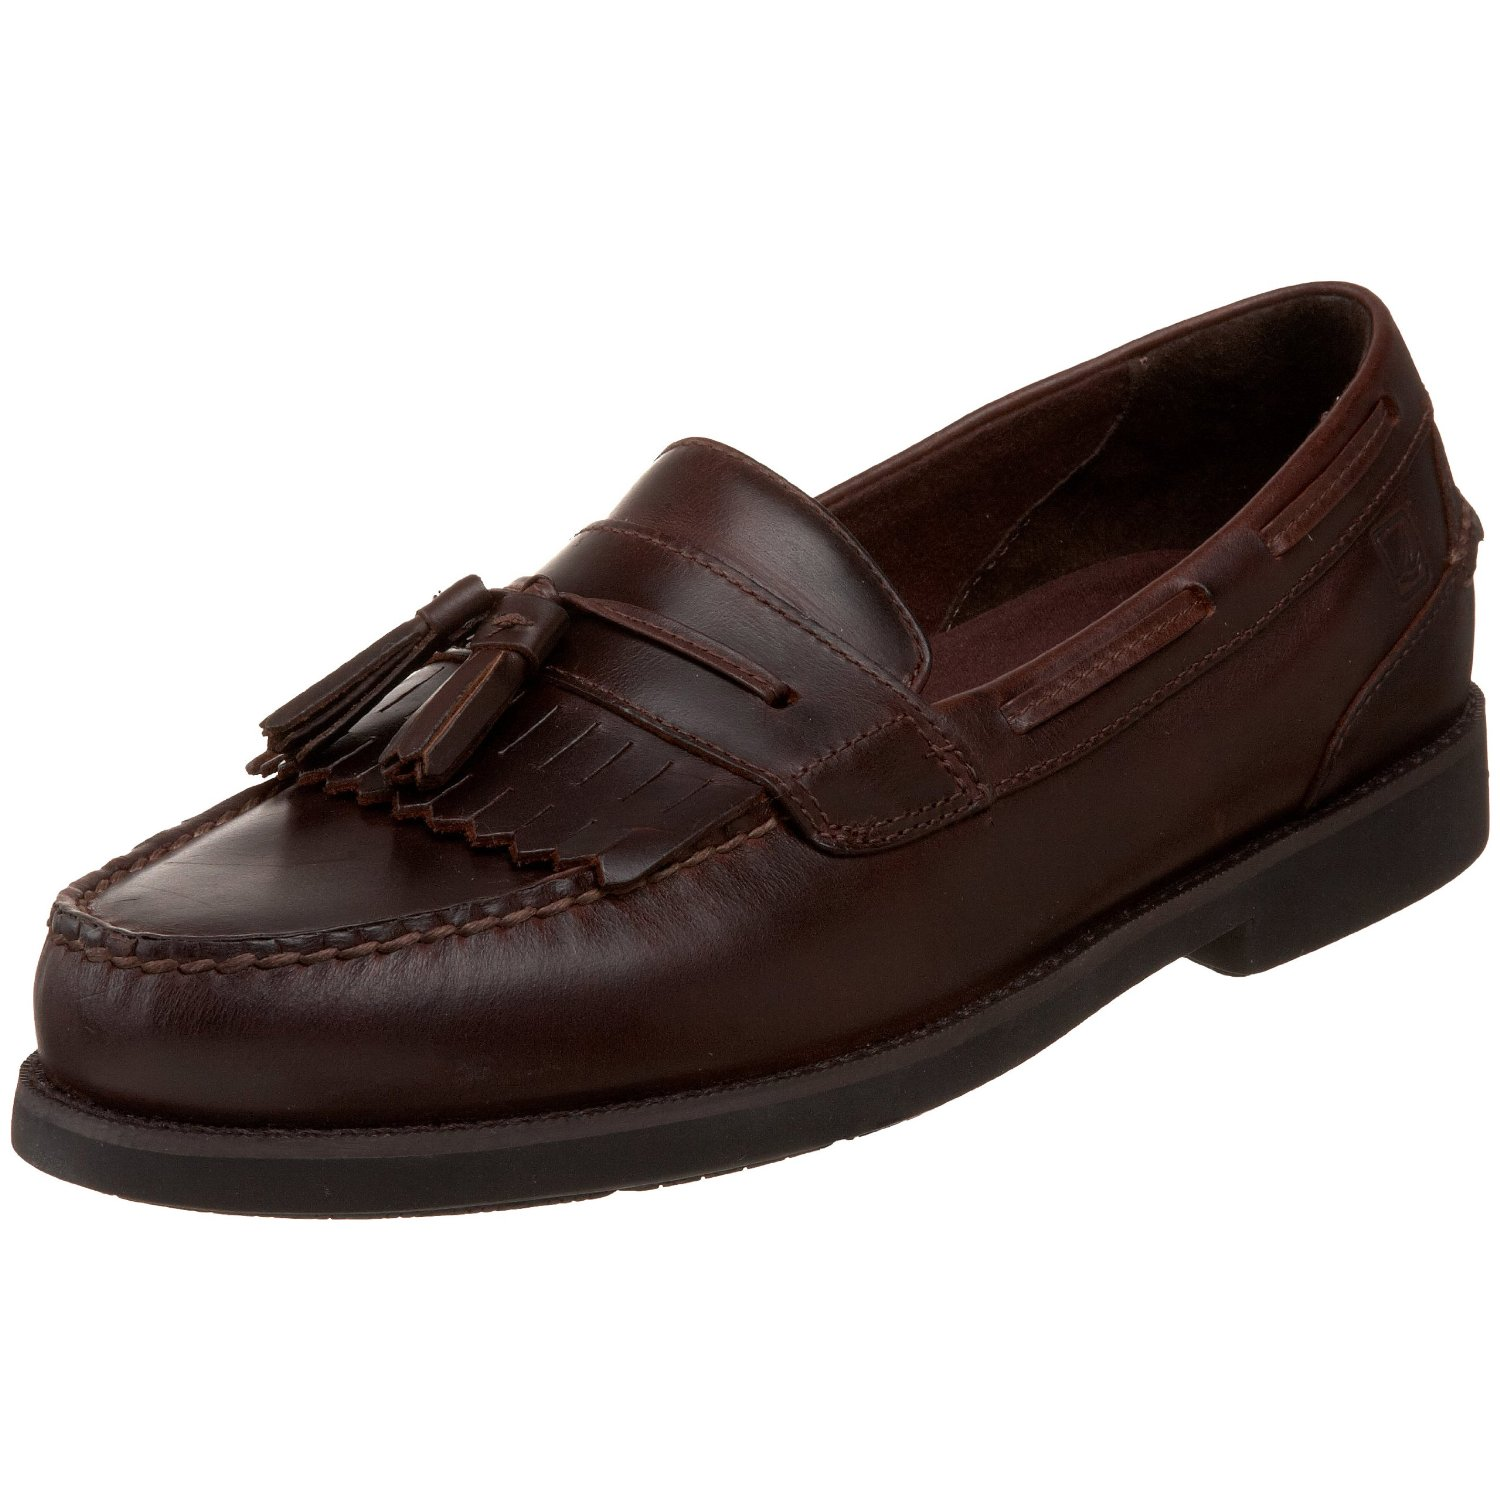 Sperry Top-sider Sperry Topsider Mens Seaport Loafer in ...